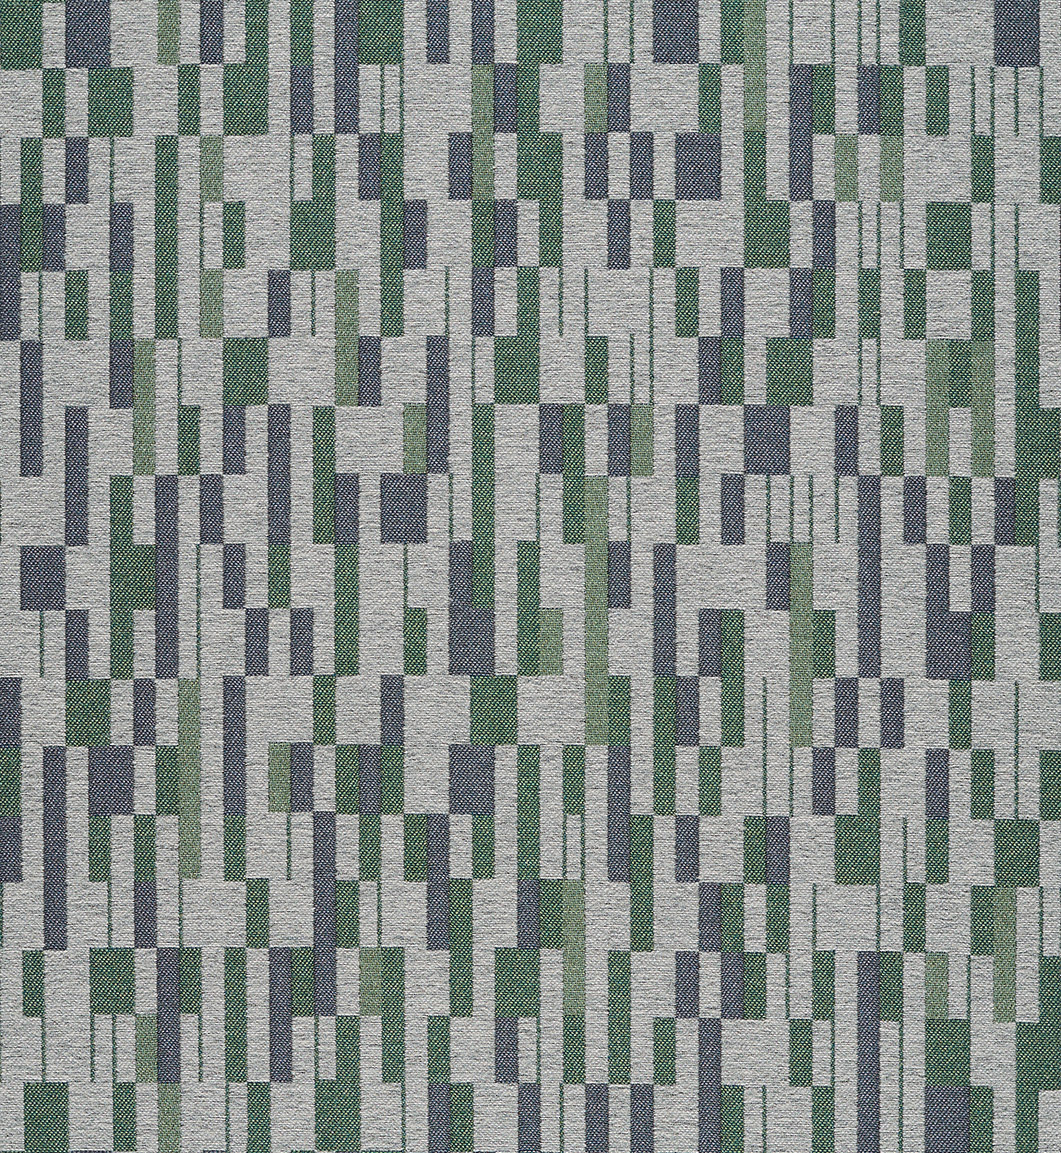 Modulus - Site - 4057 - 06 Tileable Swatches